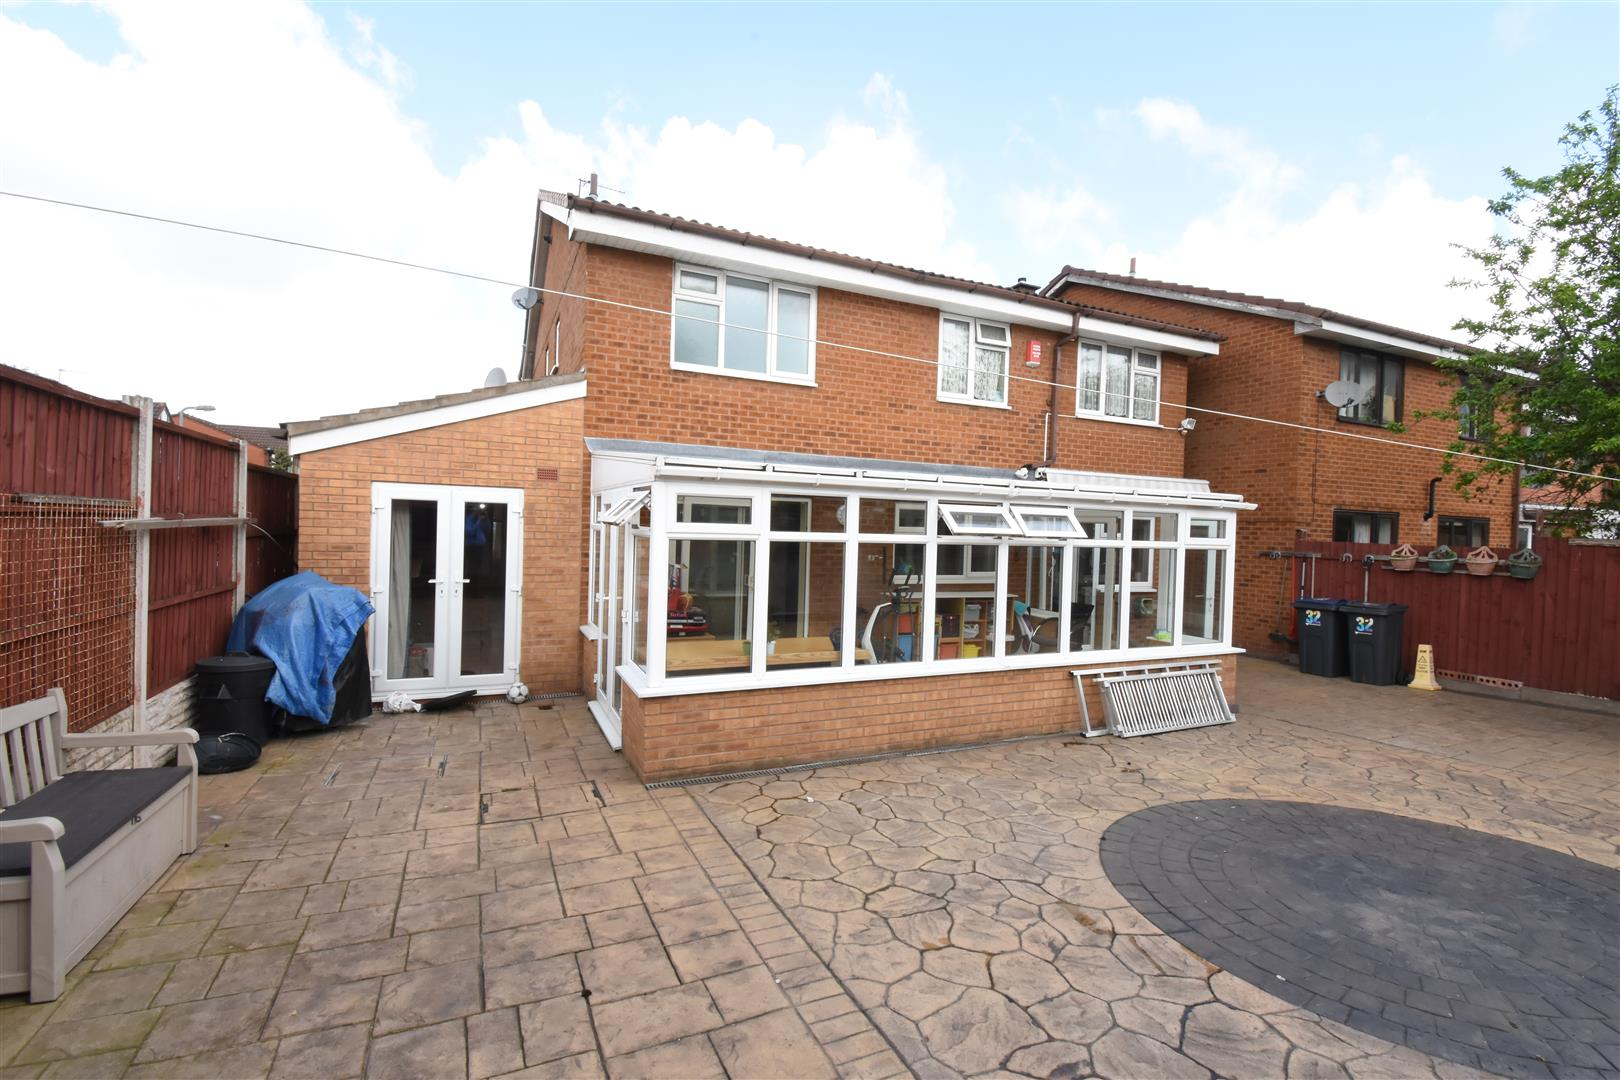 5 bed house for sale in Johnson Close, Hodge Hill, Birmingham 2